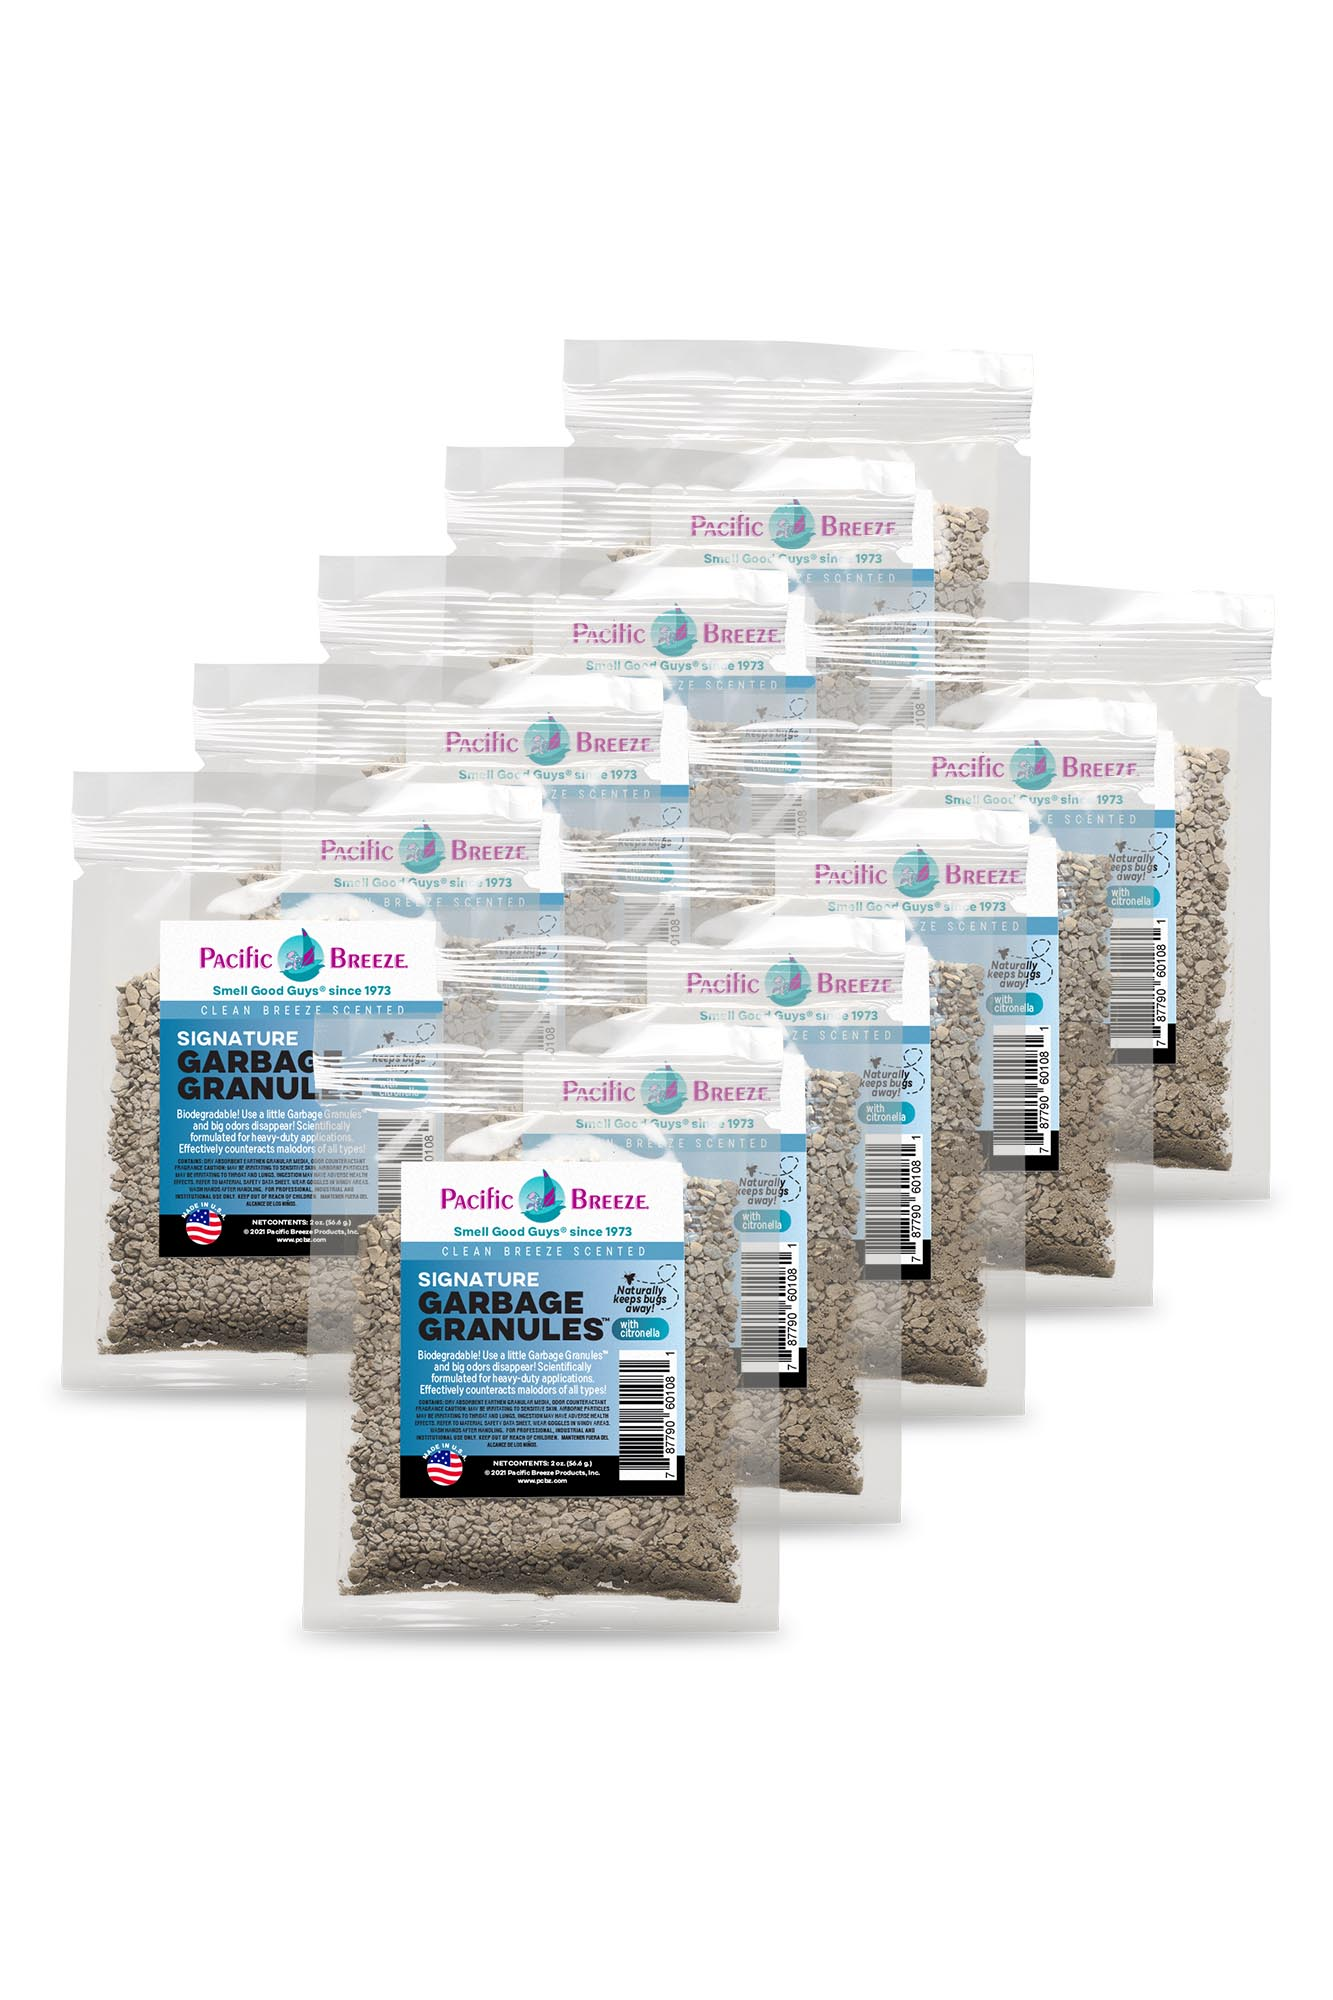 Pacific Breeze Garbage Granules™ Odor Control Packets - Signature, 1 Box (10 Packets)